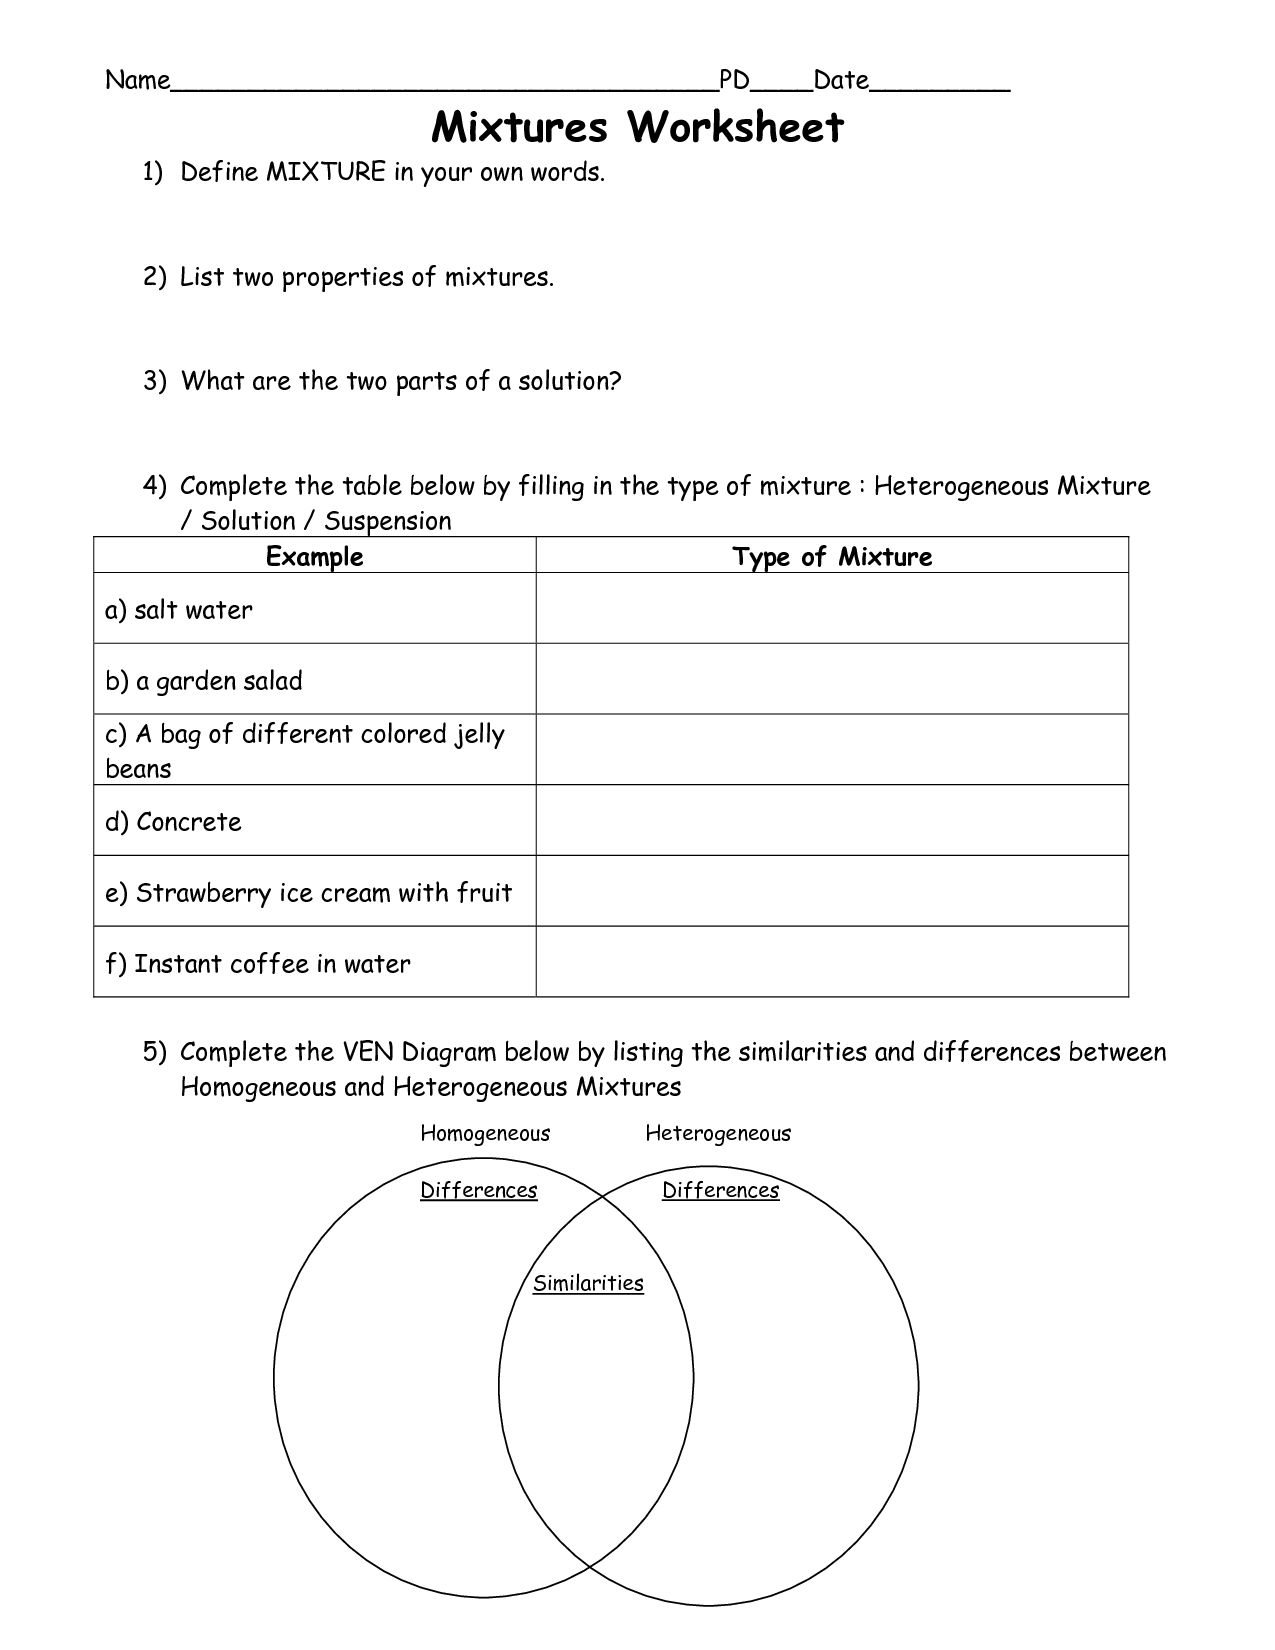 Worksheets Mixture Worksheet elements of art worksheets scope work template handout template